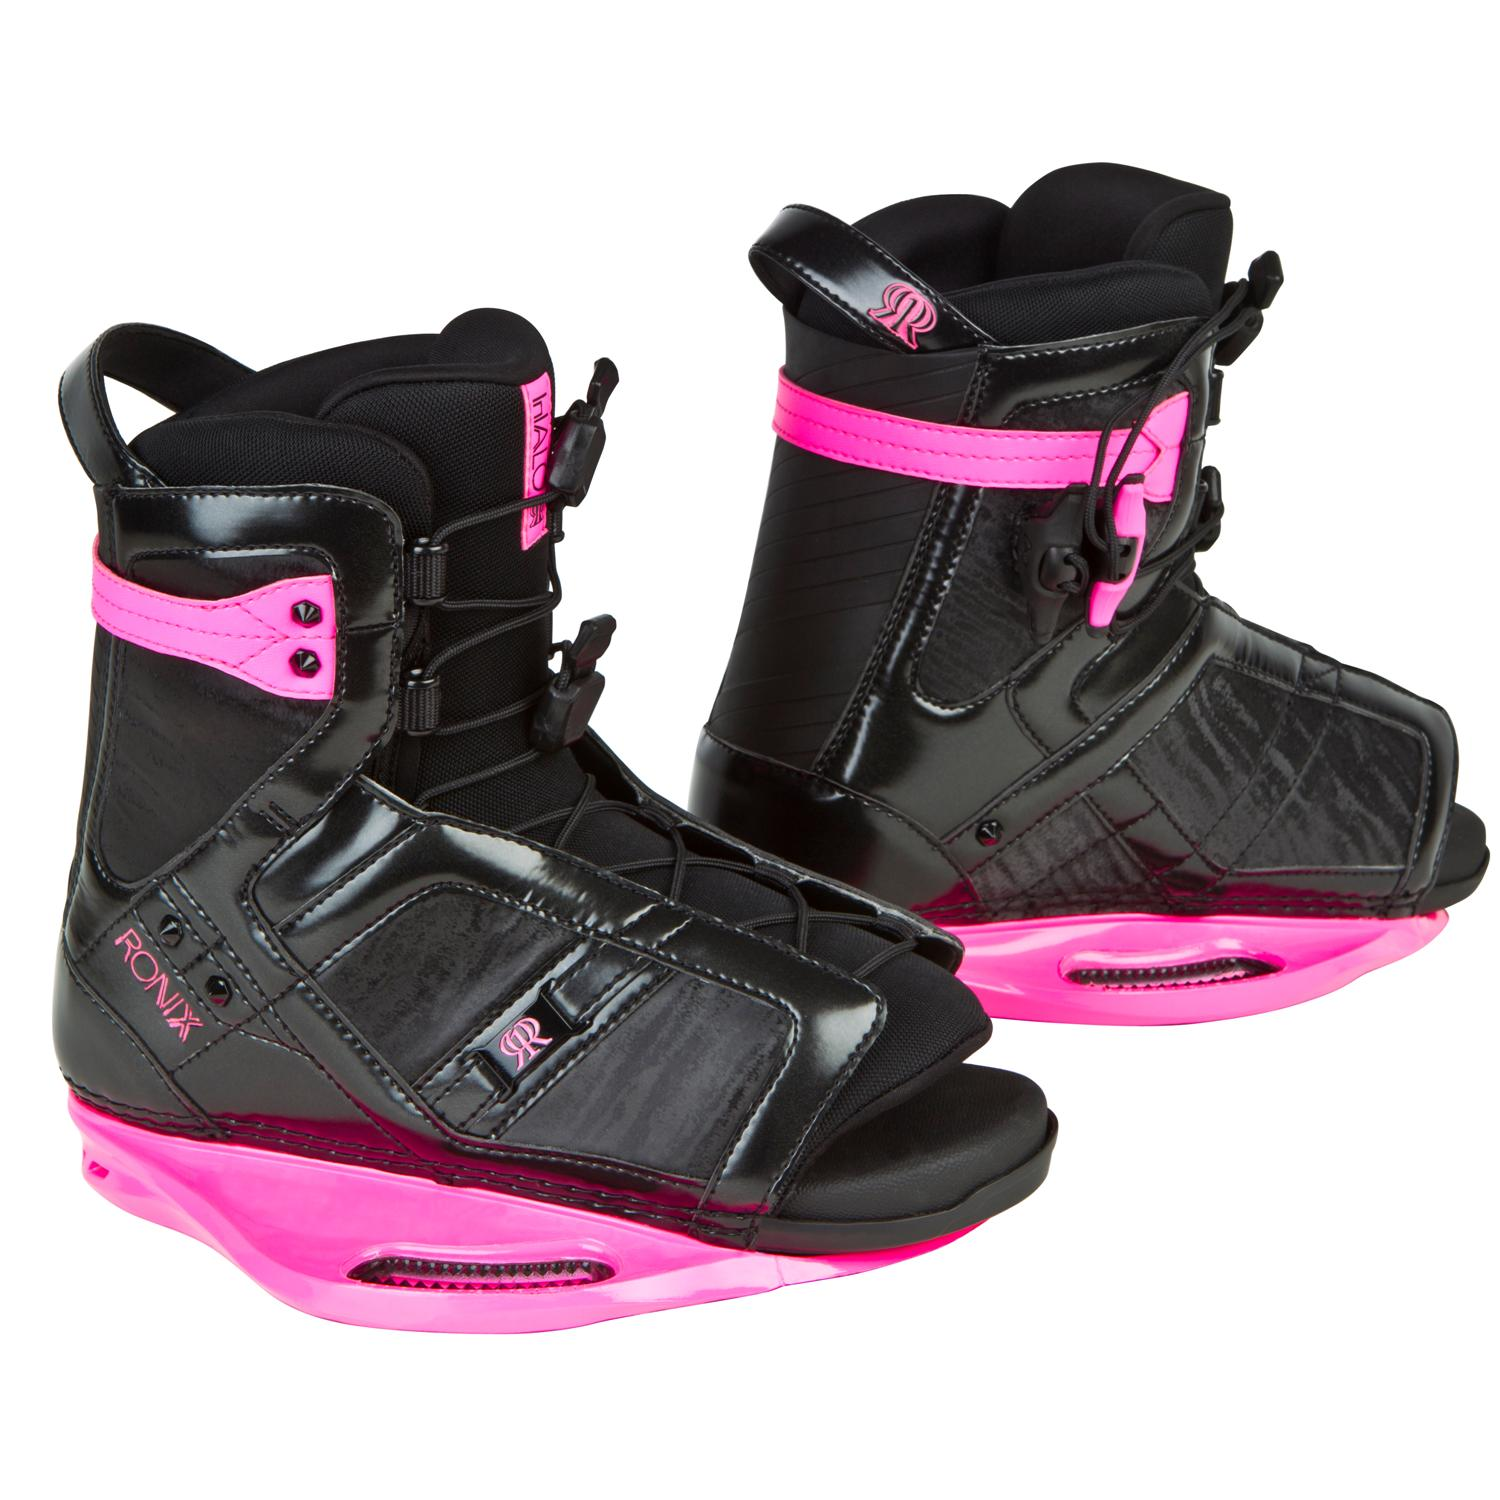 Ronix Krush Wakeboard + Halo Bindings - Women's 2013